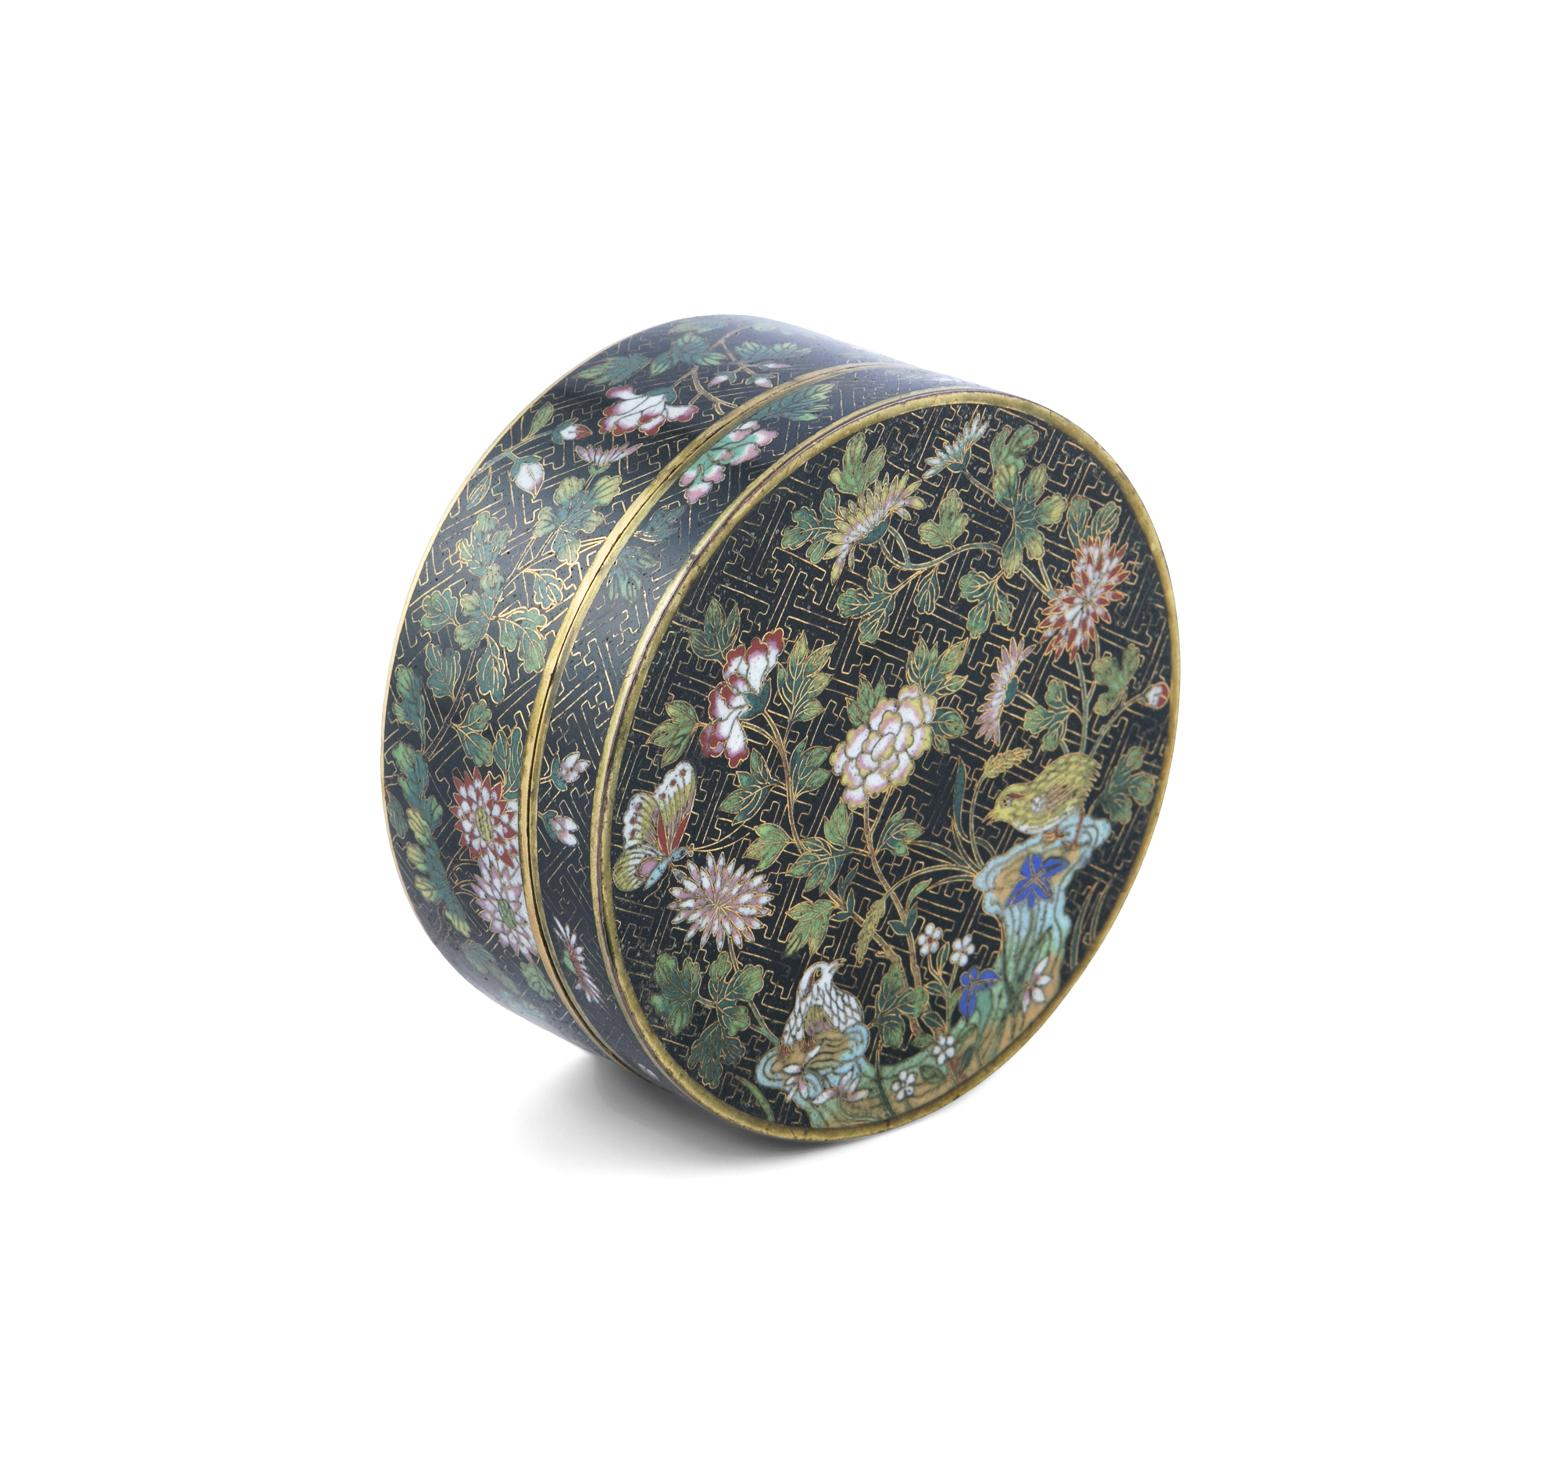 A 'FLOWER AND ROCKS' ROUND CLOISONNE BOX AND COVER China, Late Qing to Republican / Minguo period - Image 2 of 36